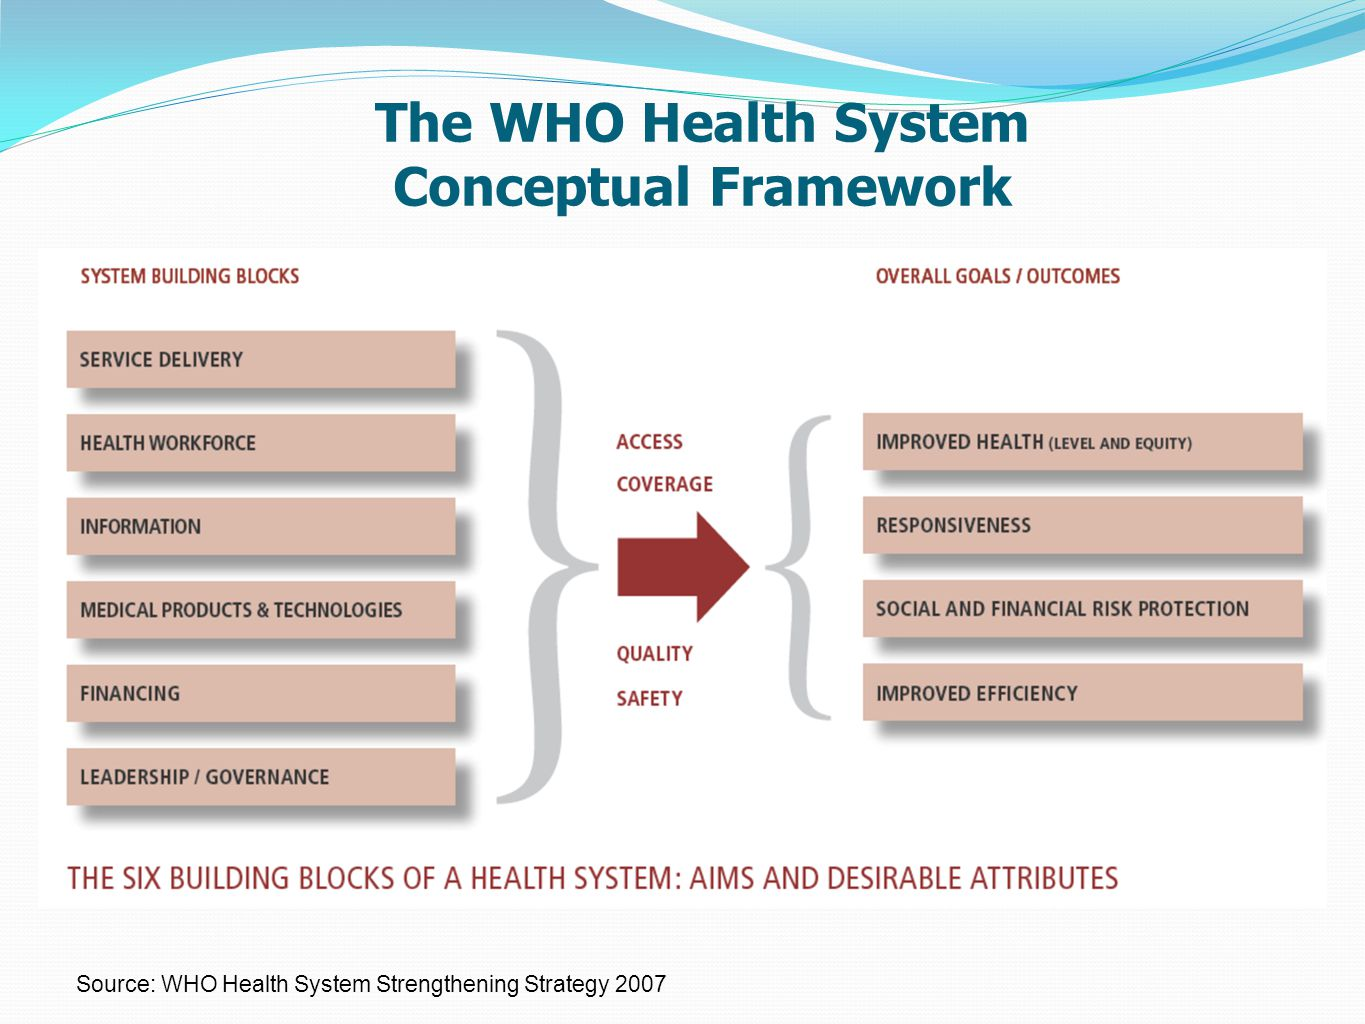 The WHO Health System Conceptual Framework